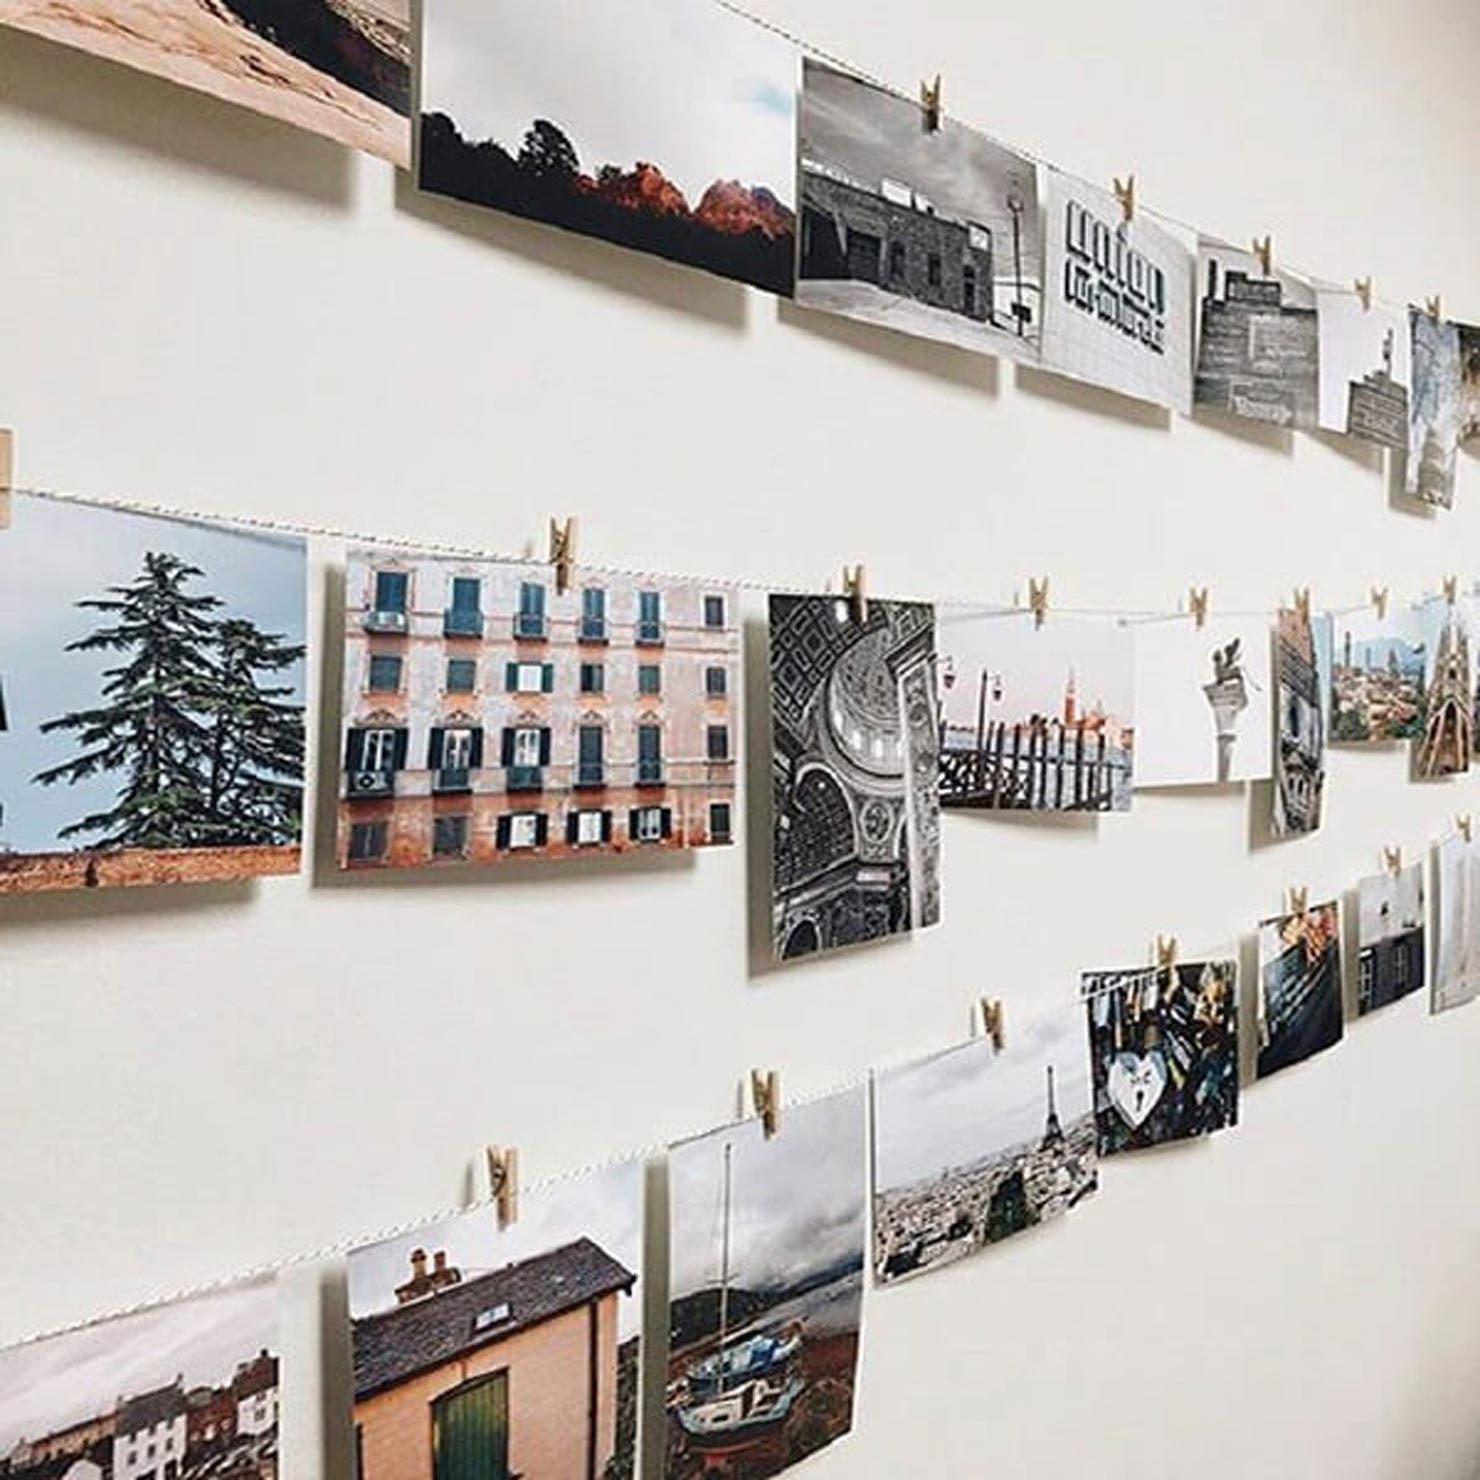 a photo wall created with strings and photos.